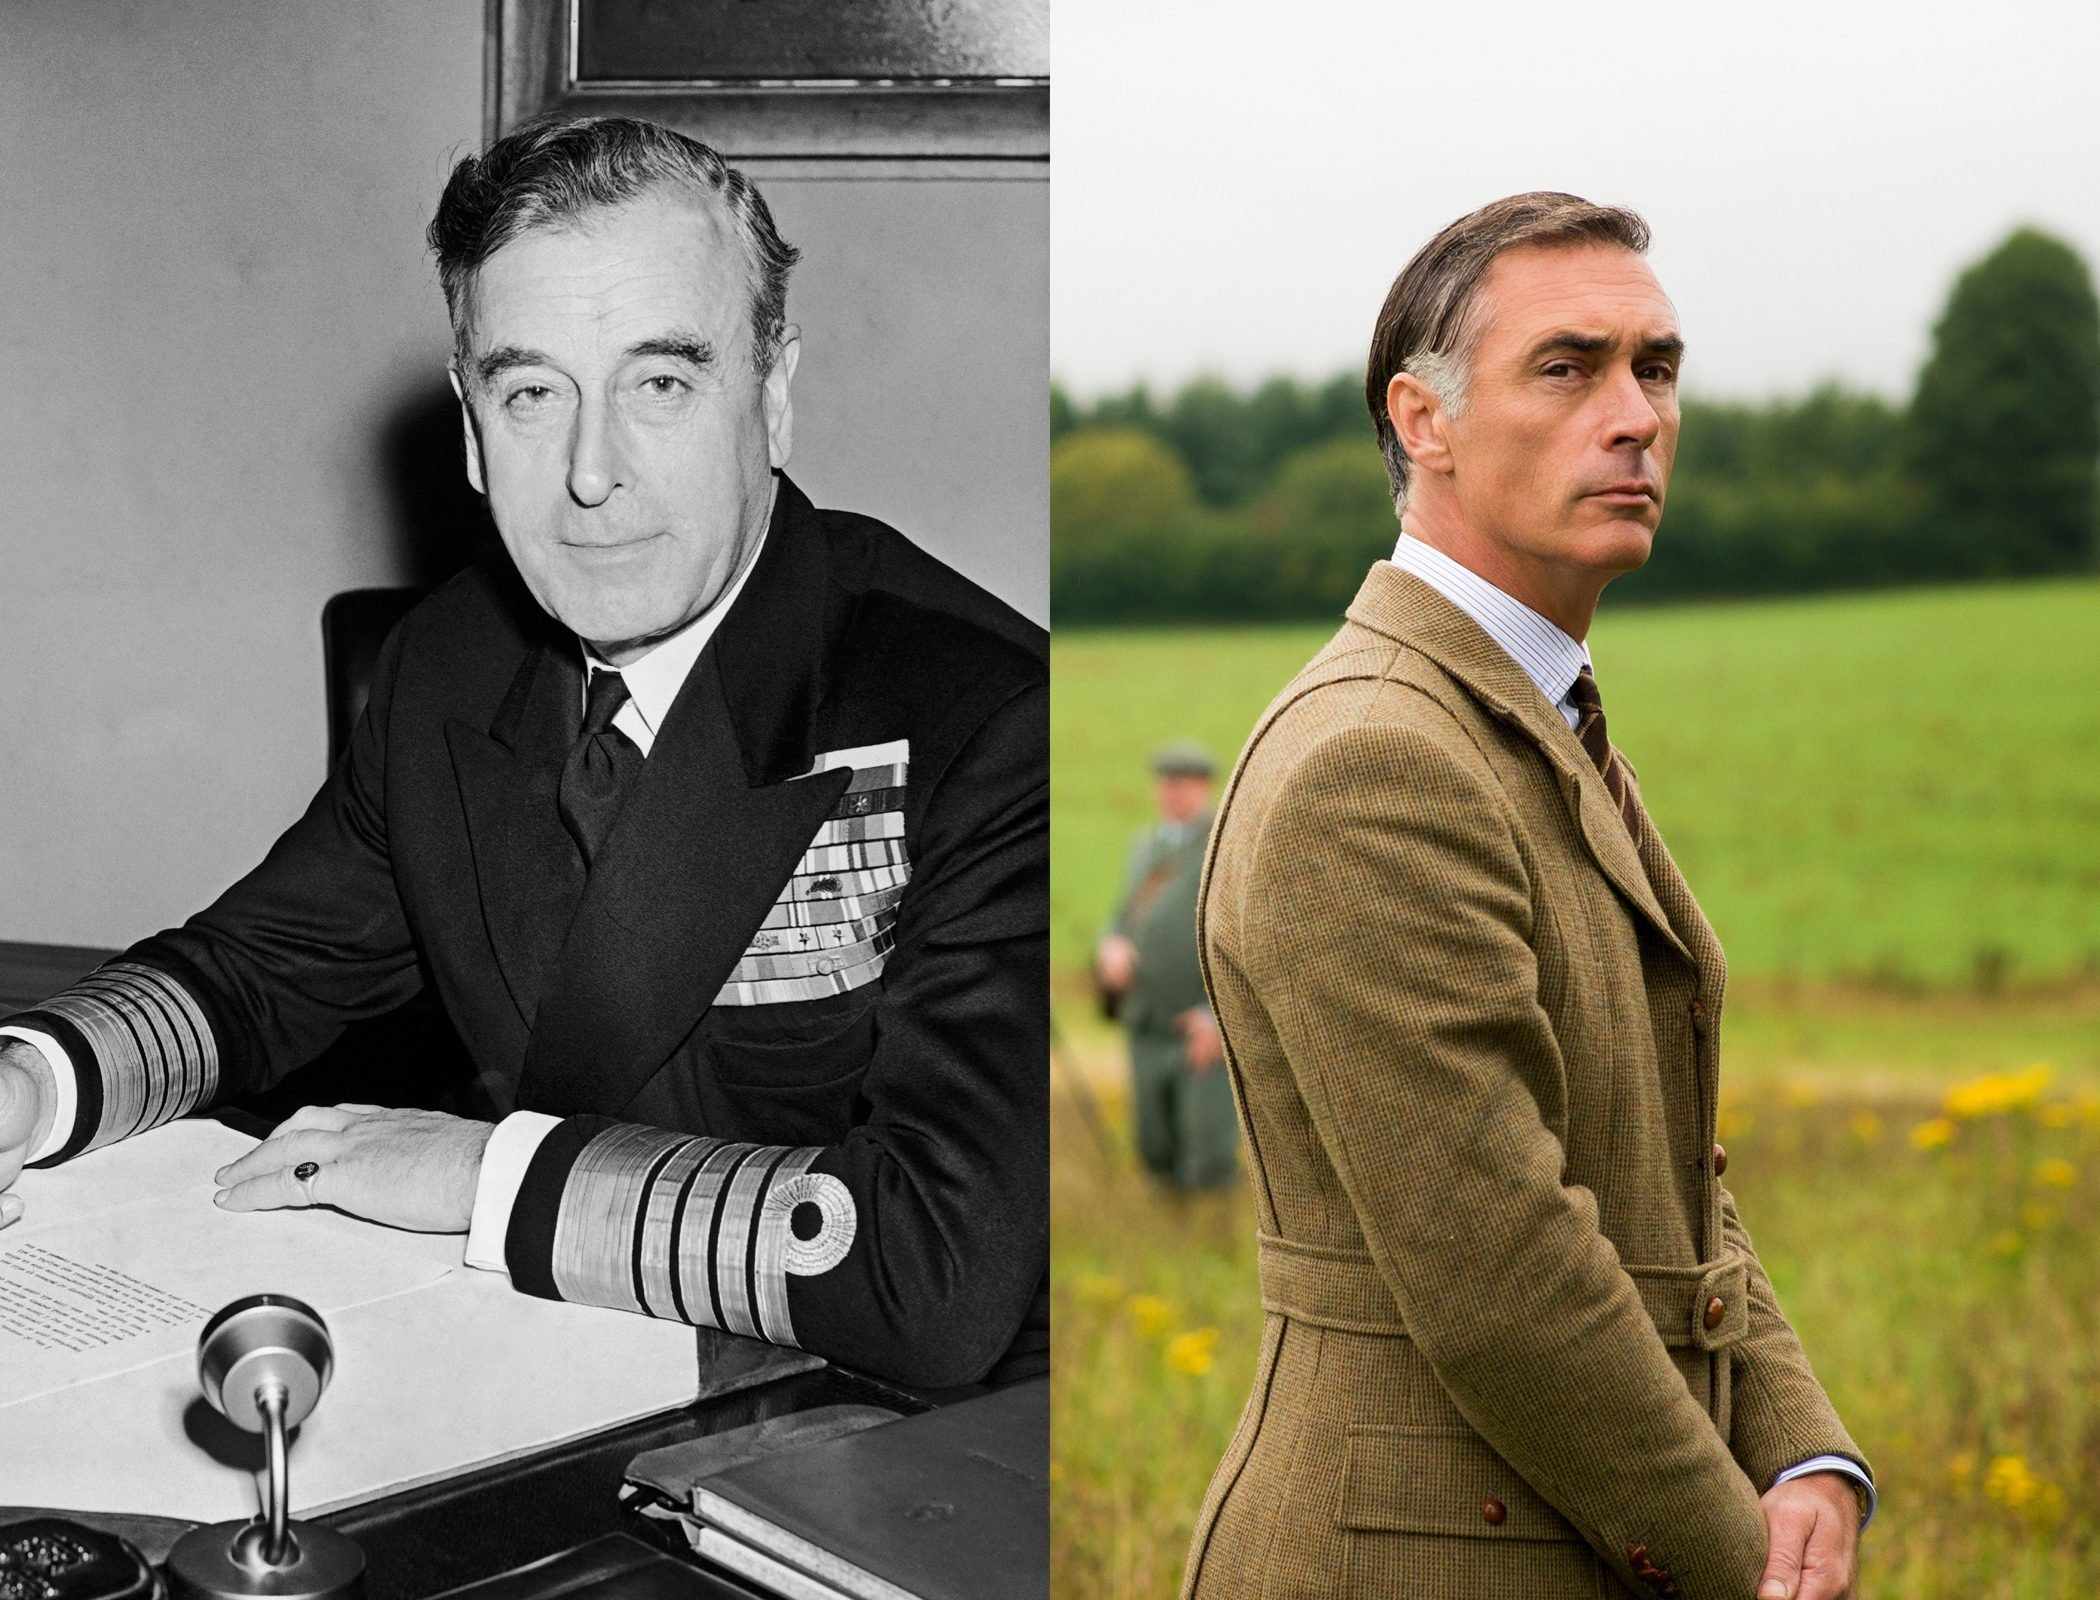 Lord Louis Mountbatten (aka Uncle Dickie), as played by Greg Wise